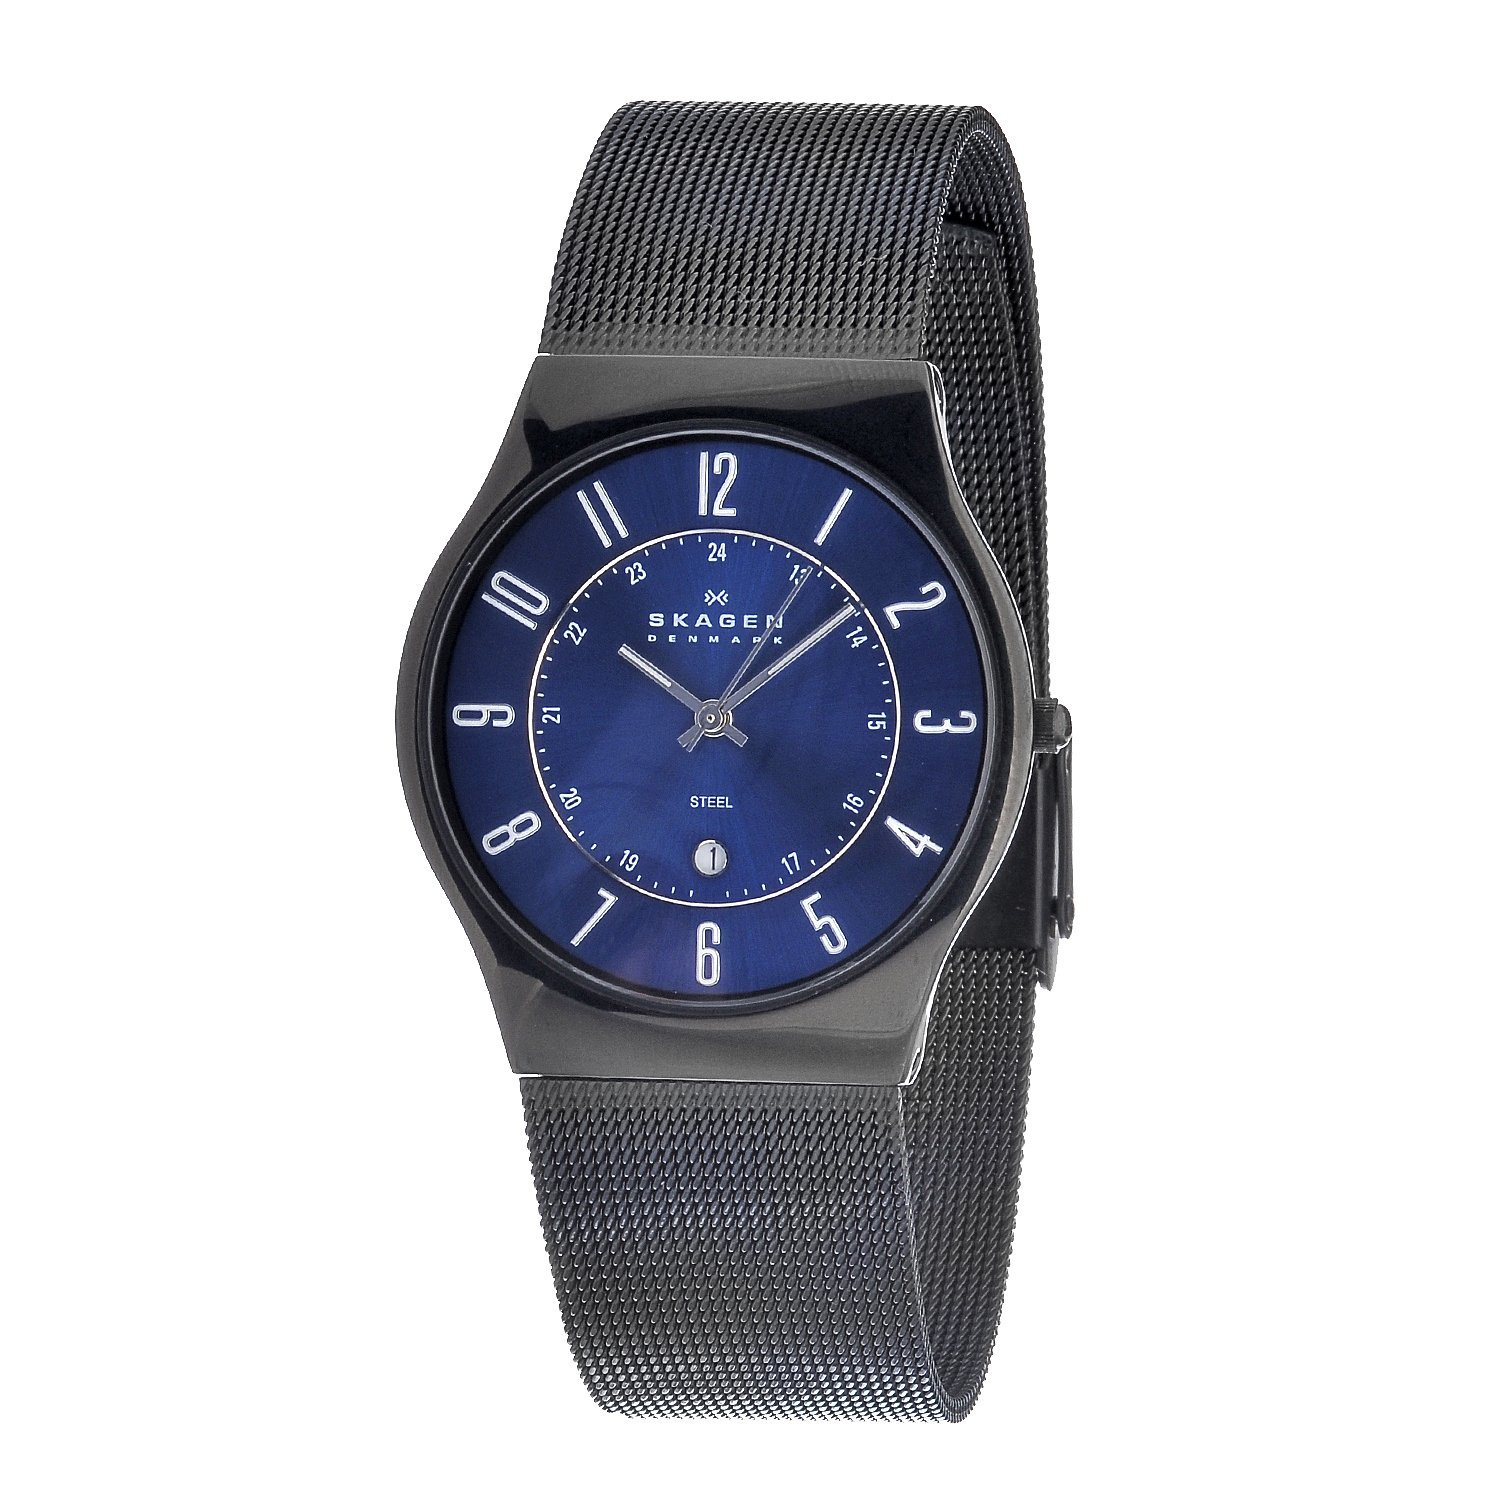 Skagen Men's 233XLSBN Stainless Steel Blue Dial Multifunction Watch